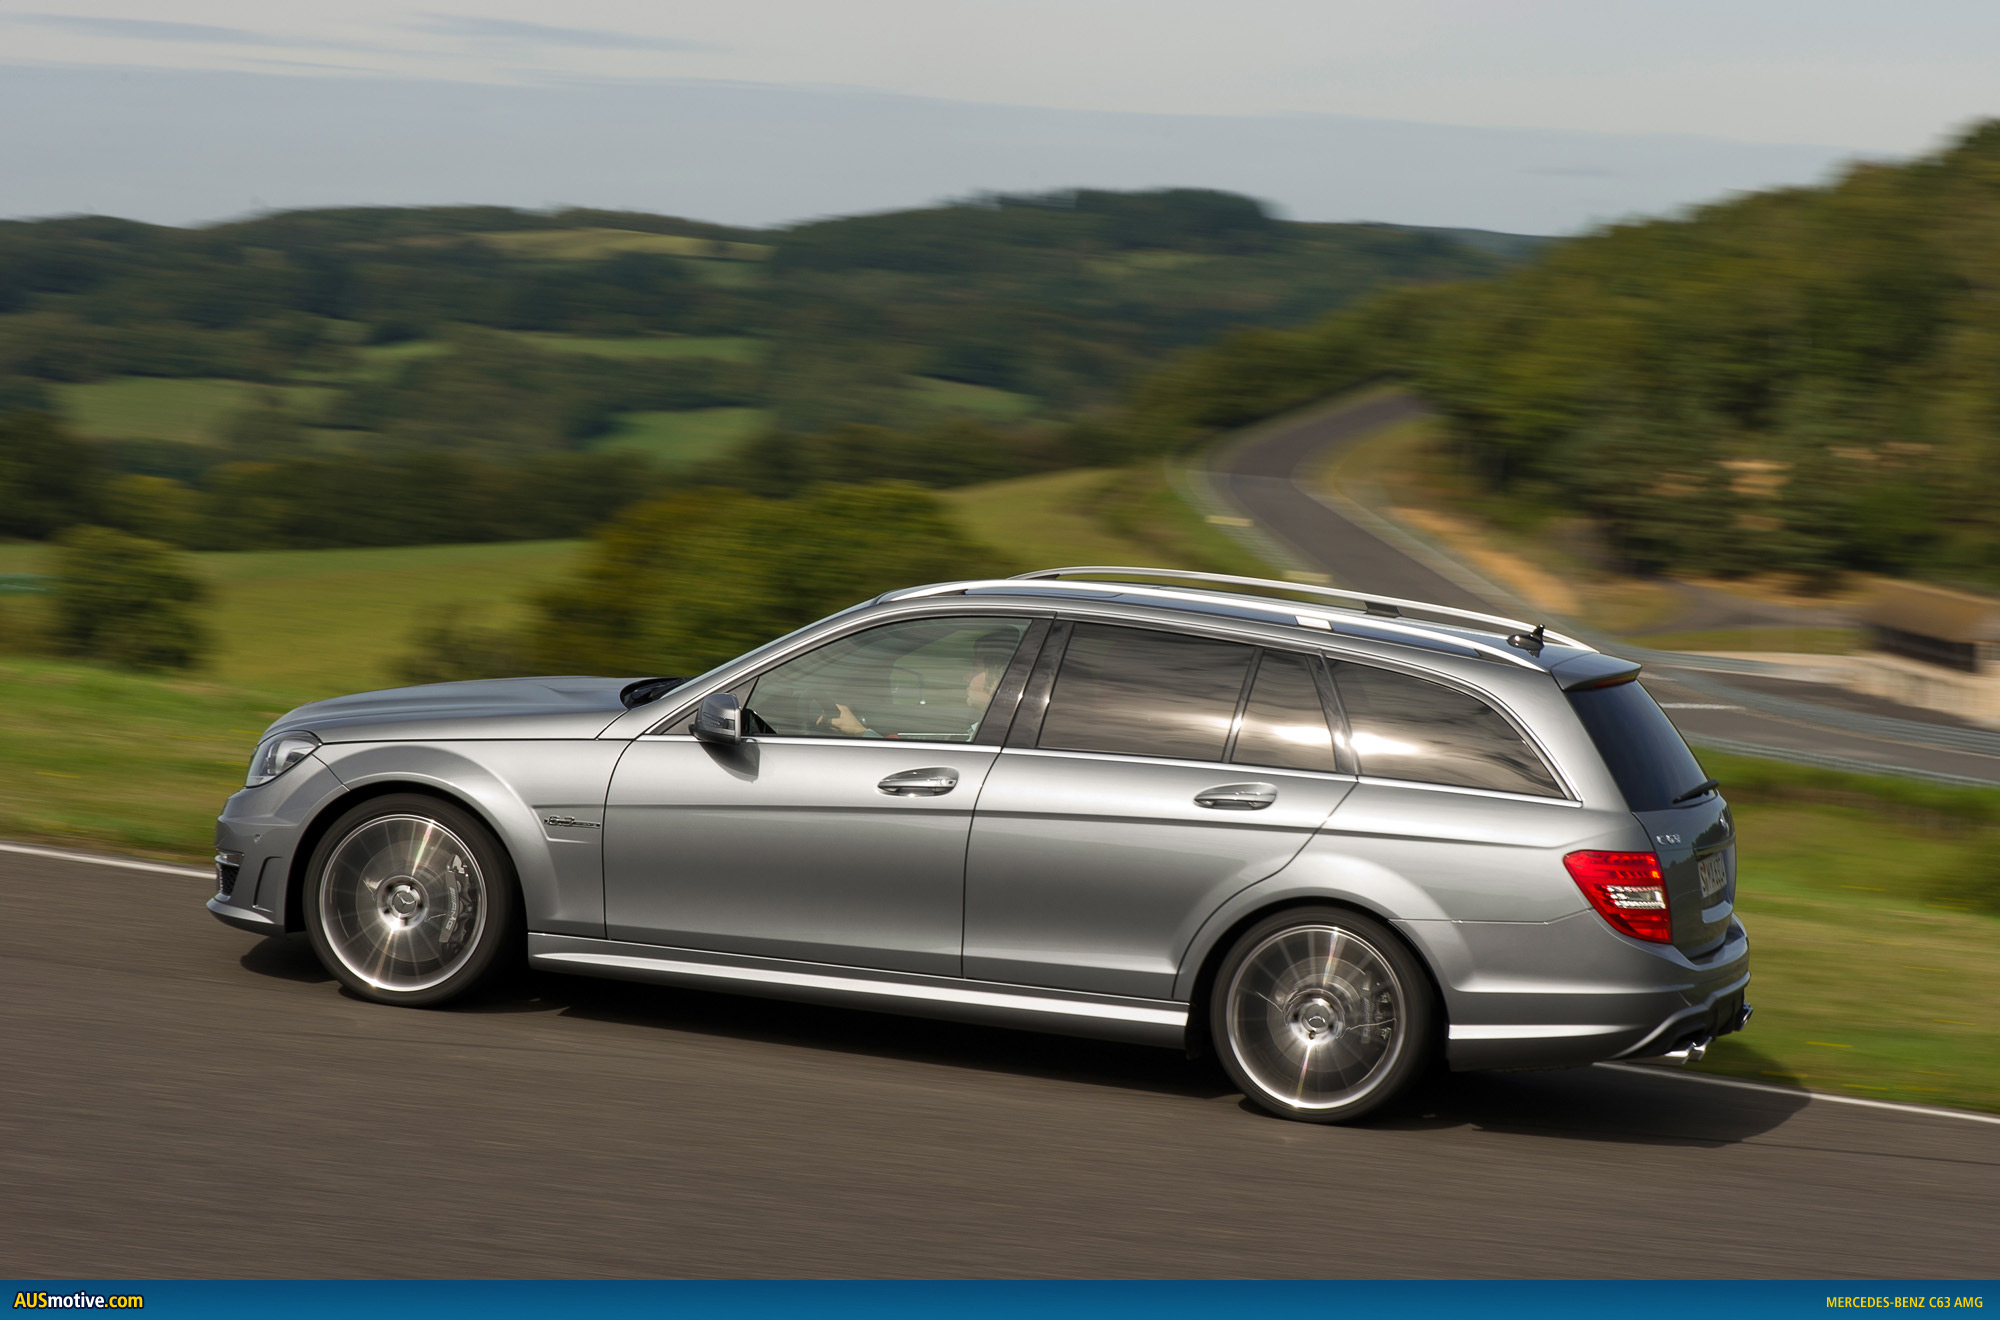 2011 mercedes benz c63 amg photo gallery. Black Bedroom Furniture Sets. Home Design Ideas